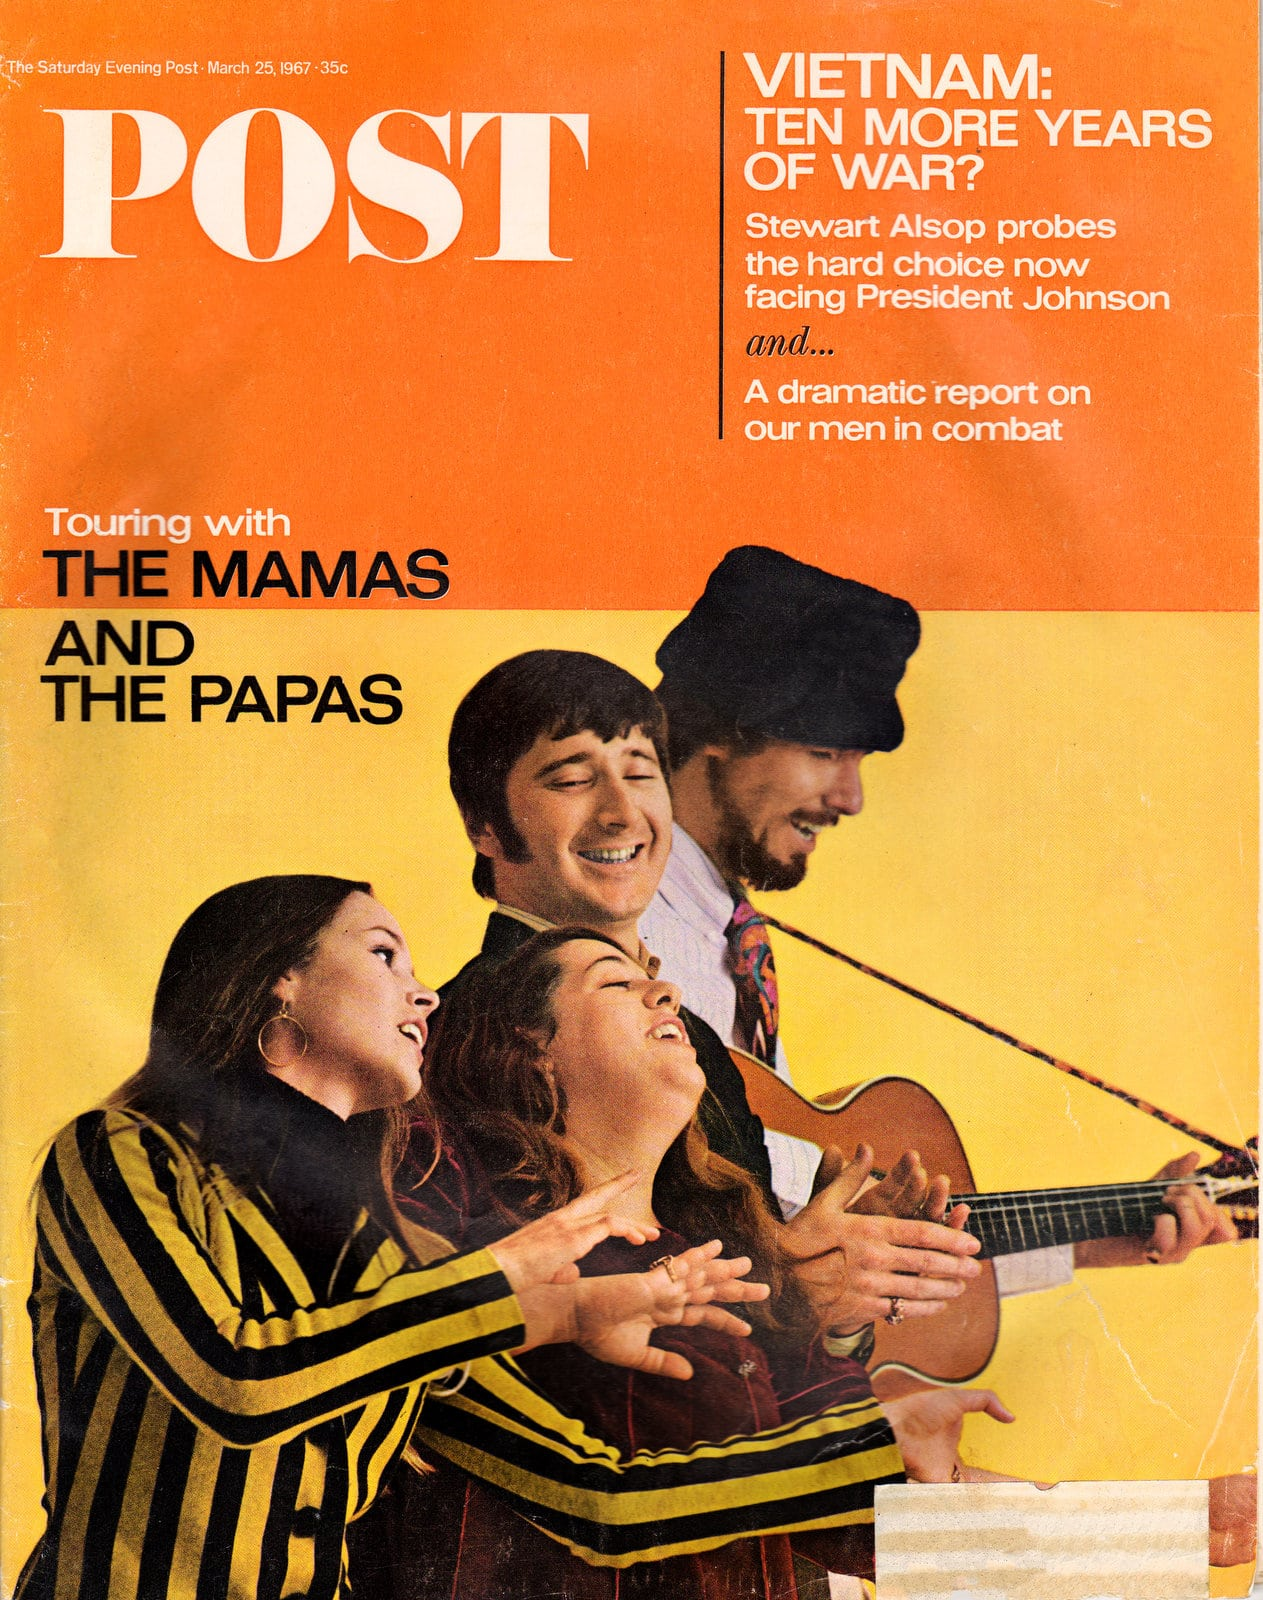 The Mamas and the Papas - Post magazine cover (1967)